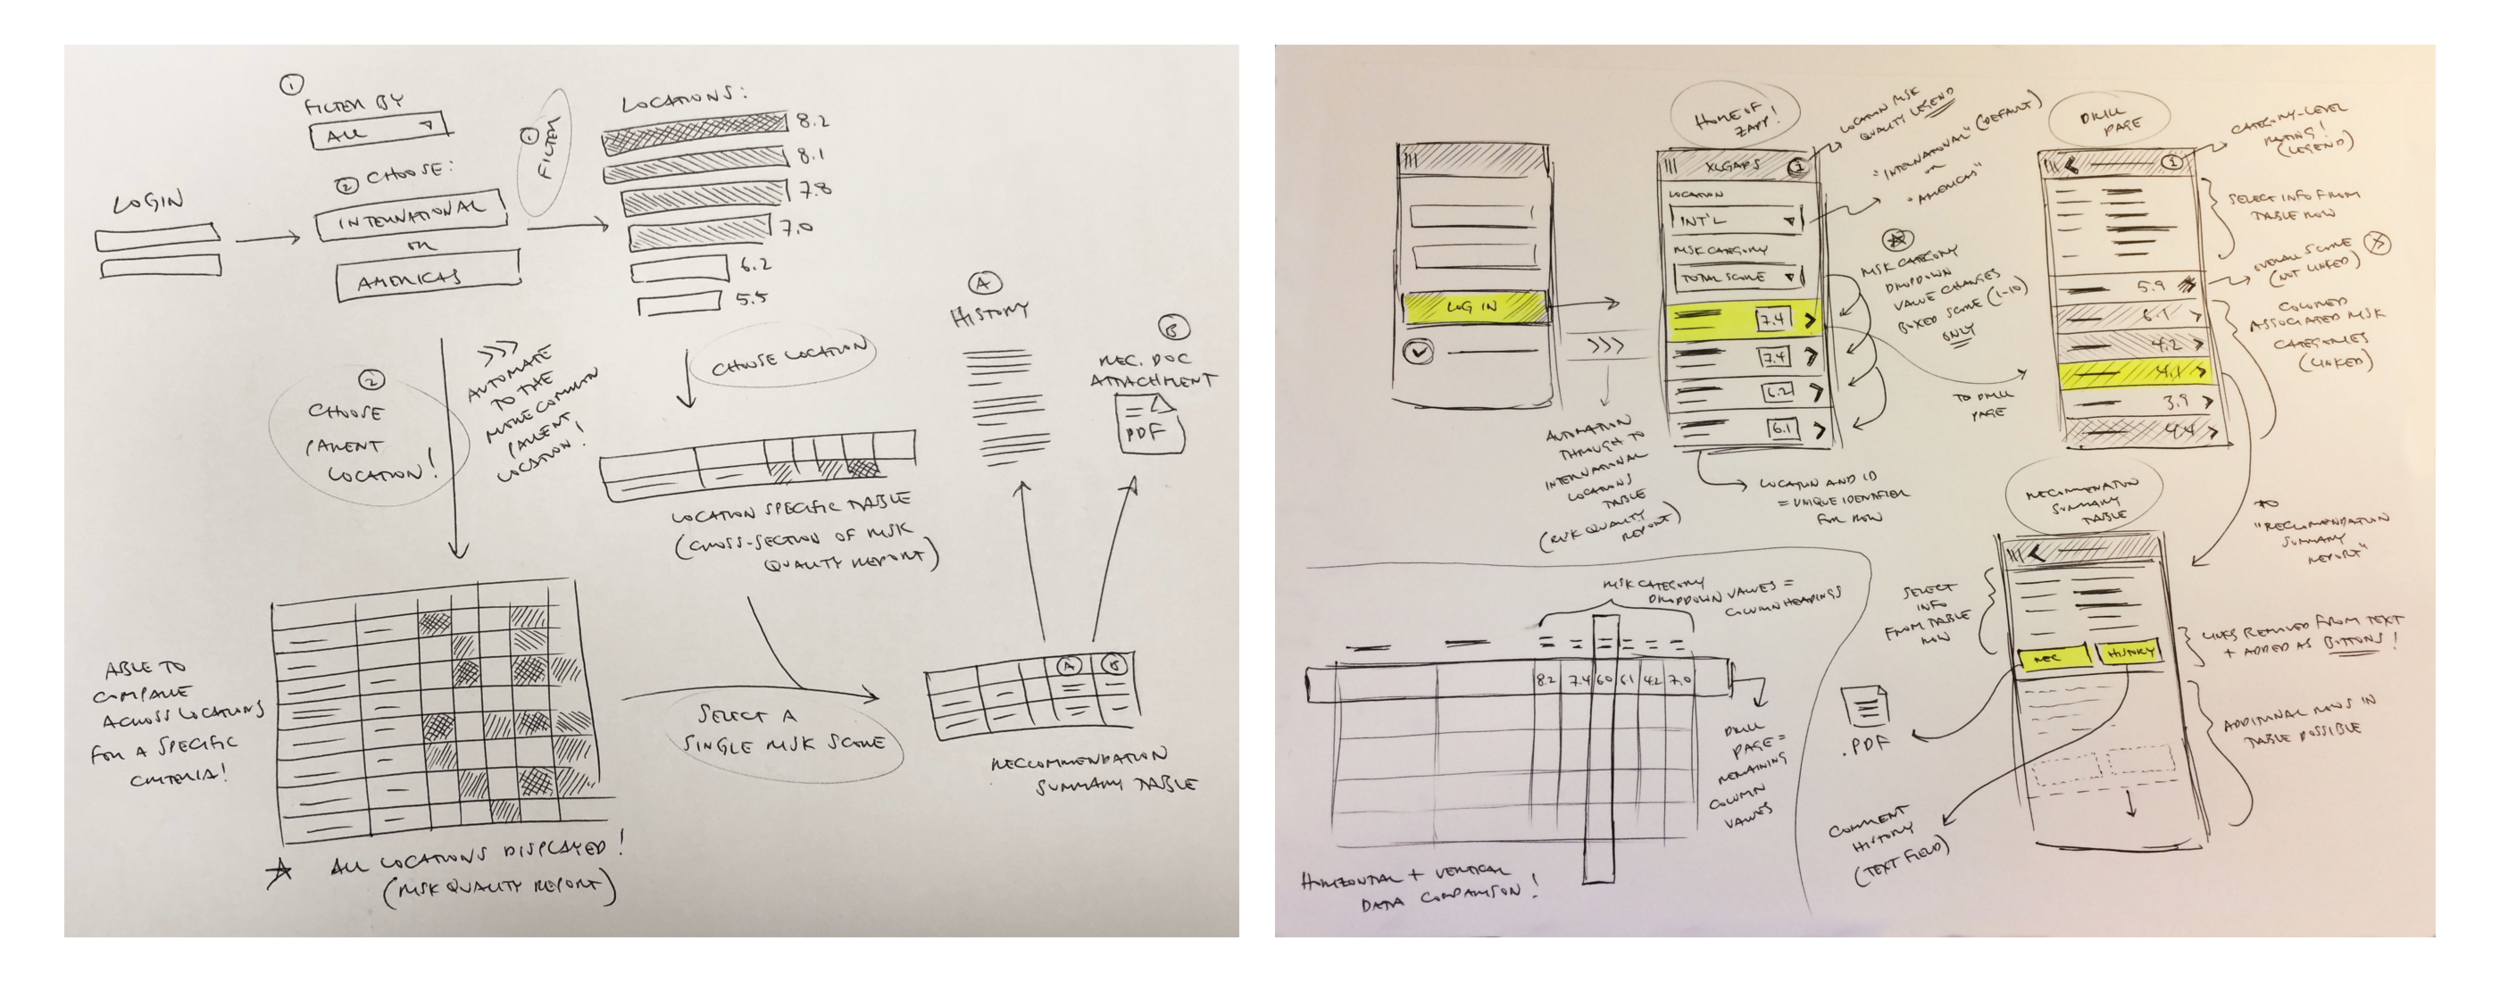 These sketches of user flows and wireframes helped to draft the UI needed to satisfy each use case.